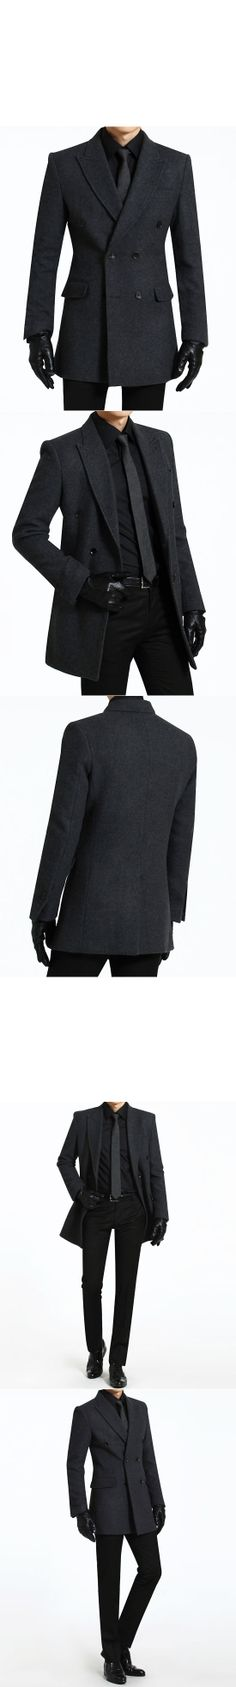 Outerwear :: Coats :: Sharp & Classic Double Wool Peaked Lapel-Coat 56 - Mens Fashion Clothing For An Attractive Guy Look